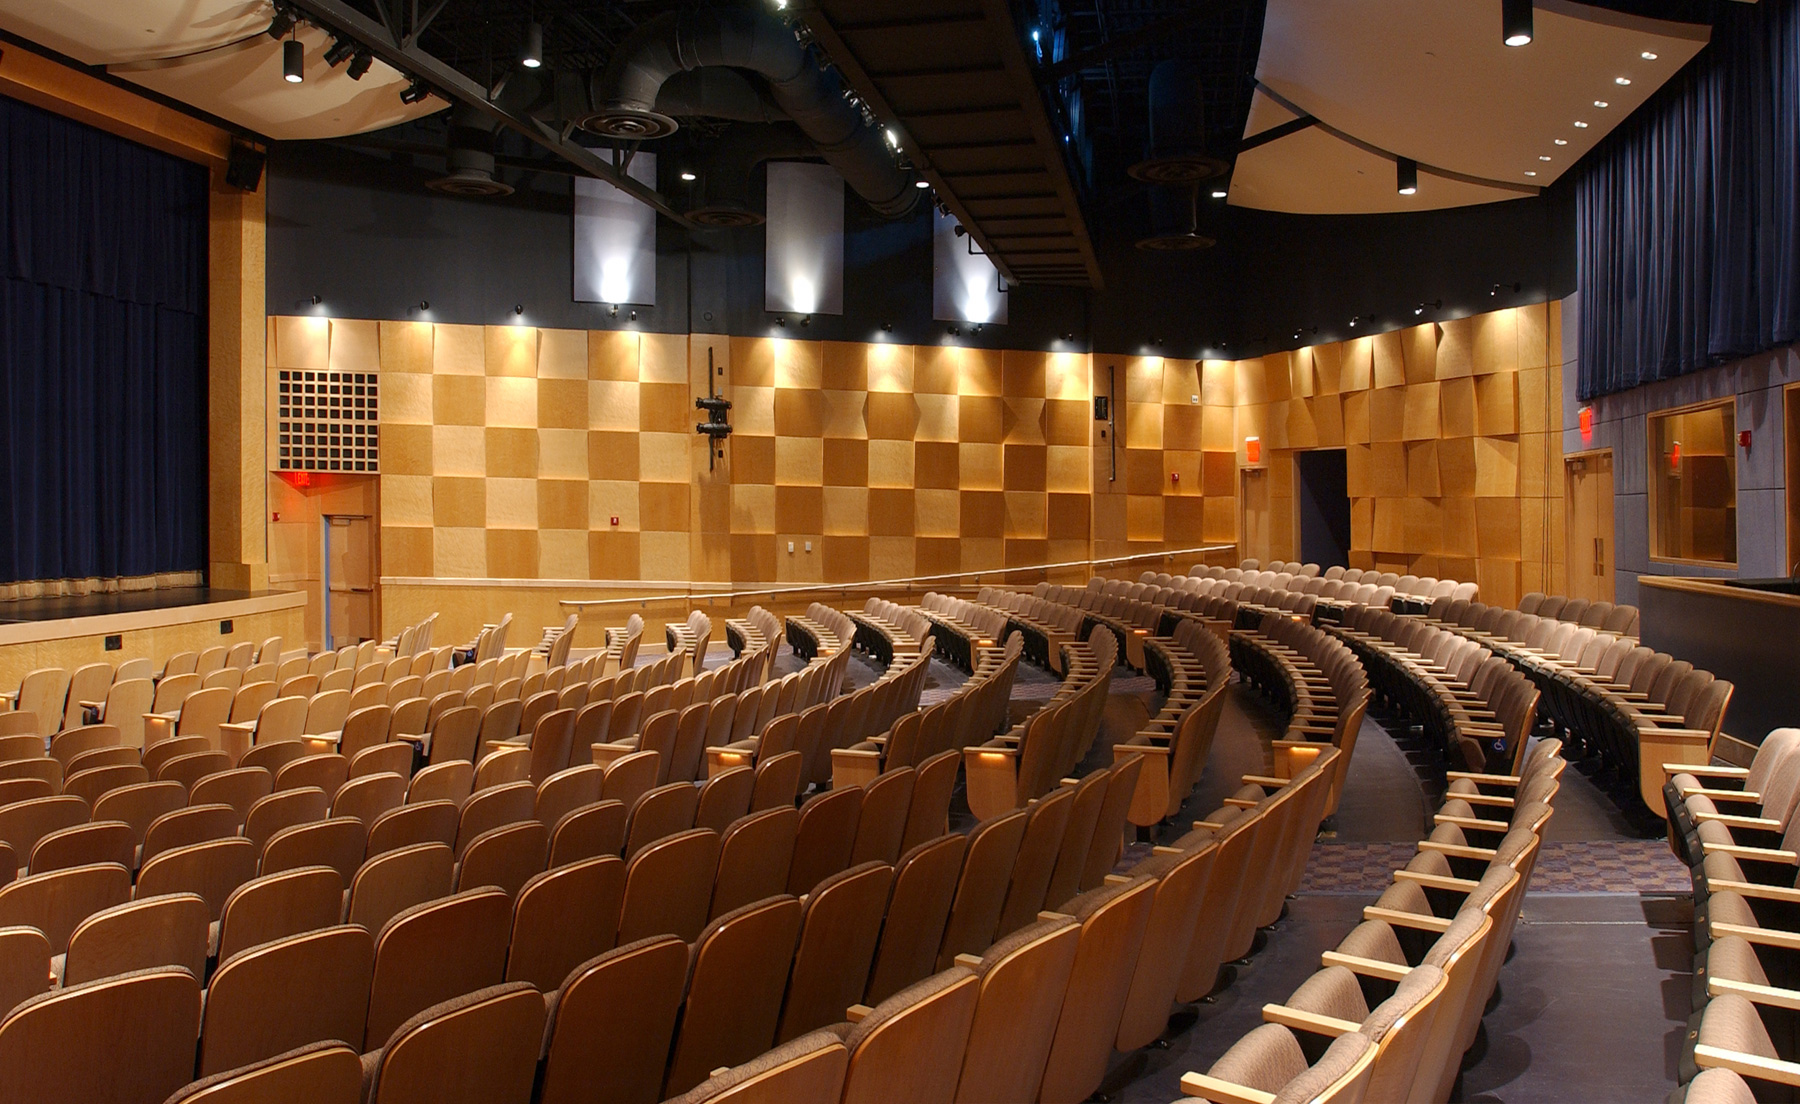 Sanply-maple-be-fla-mem-auditorium-2_8009900708_o